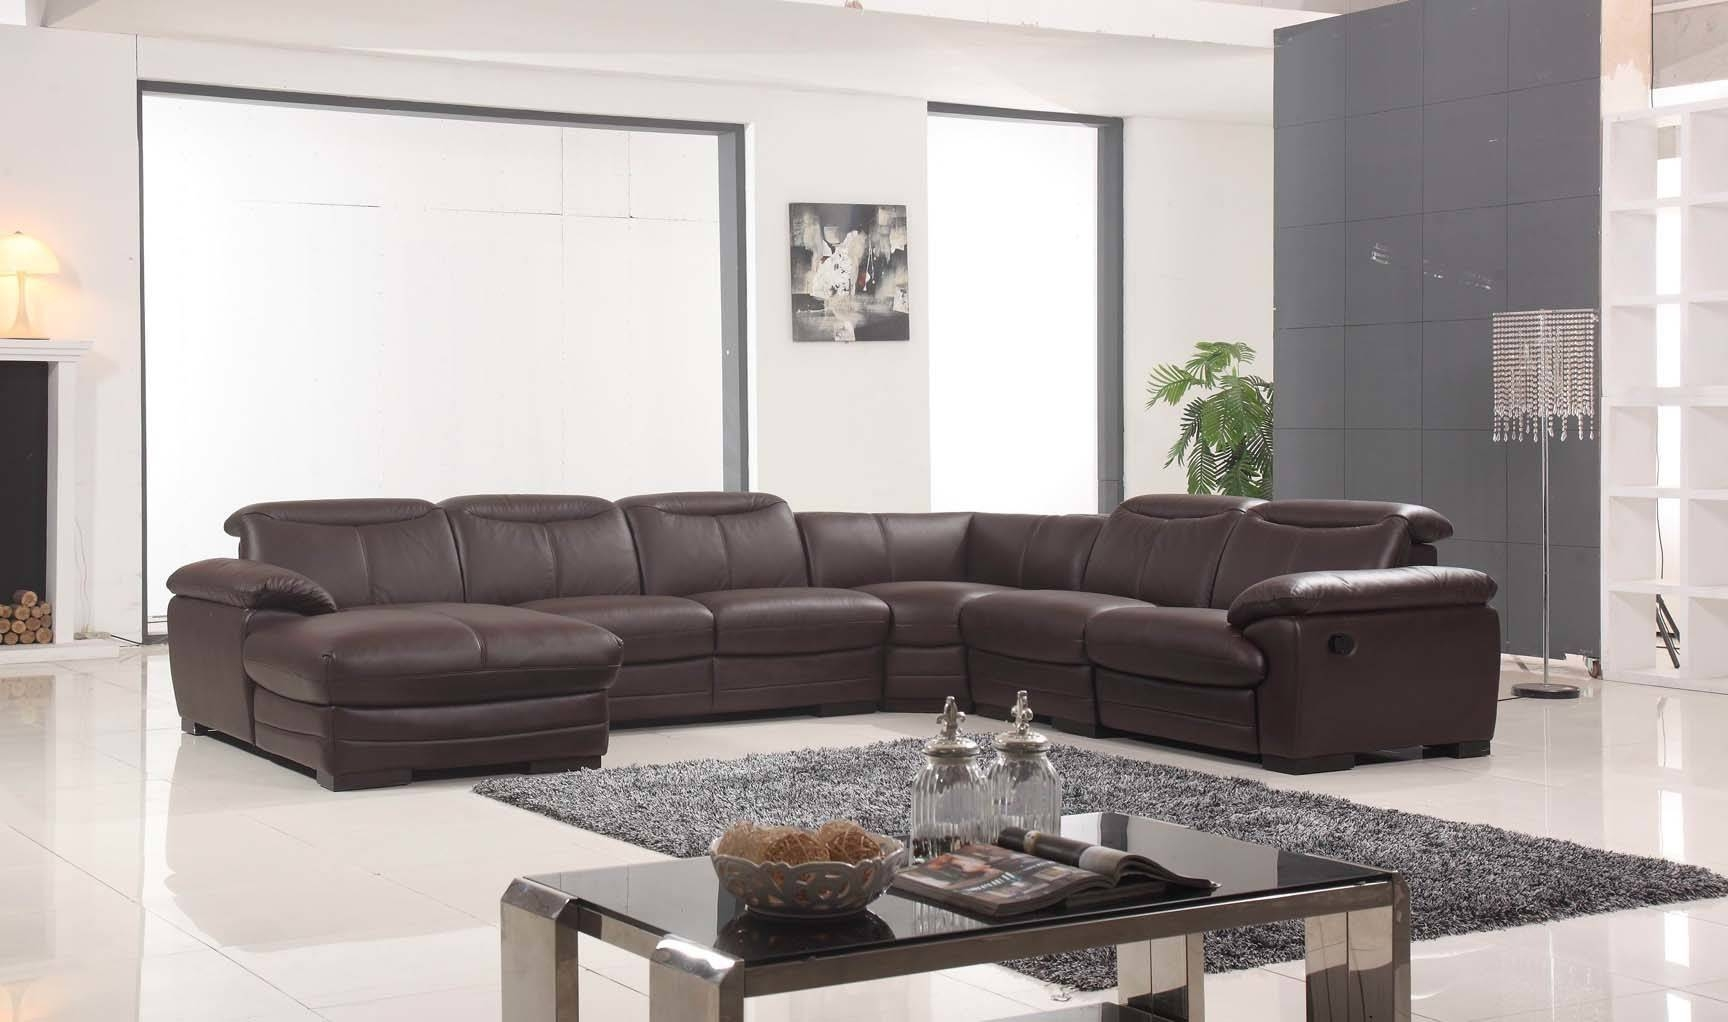 Sofas Center : Large Sectional Sofas With Ottoman For Home Theater for Extra Large Sectional Sofas (Image 28 of 30)